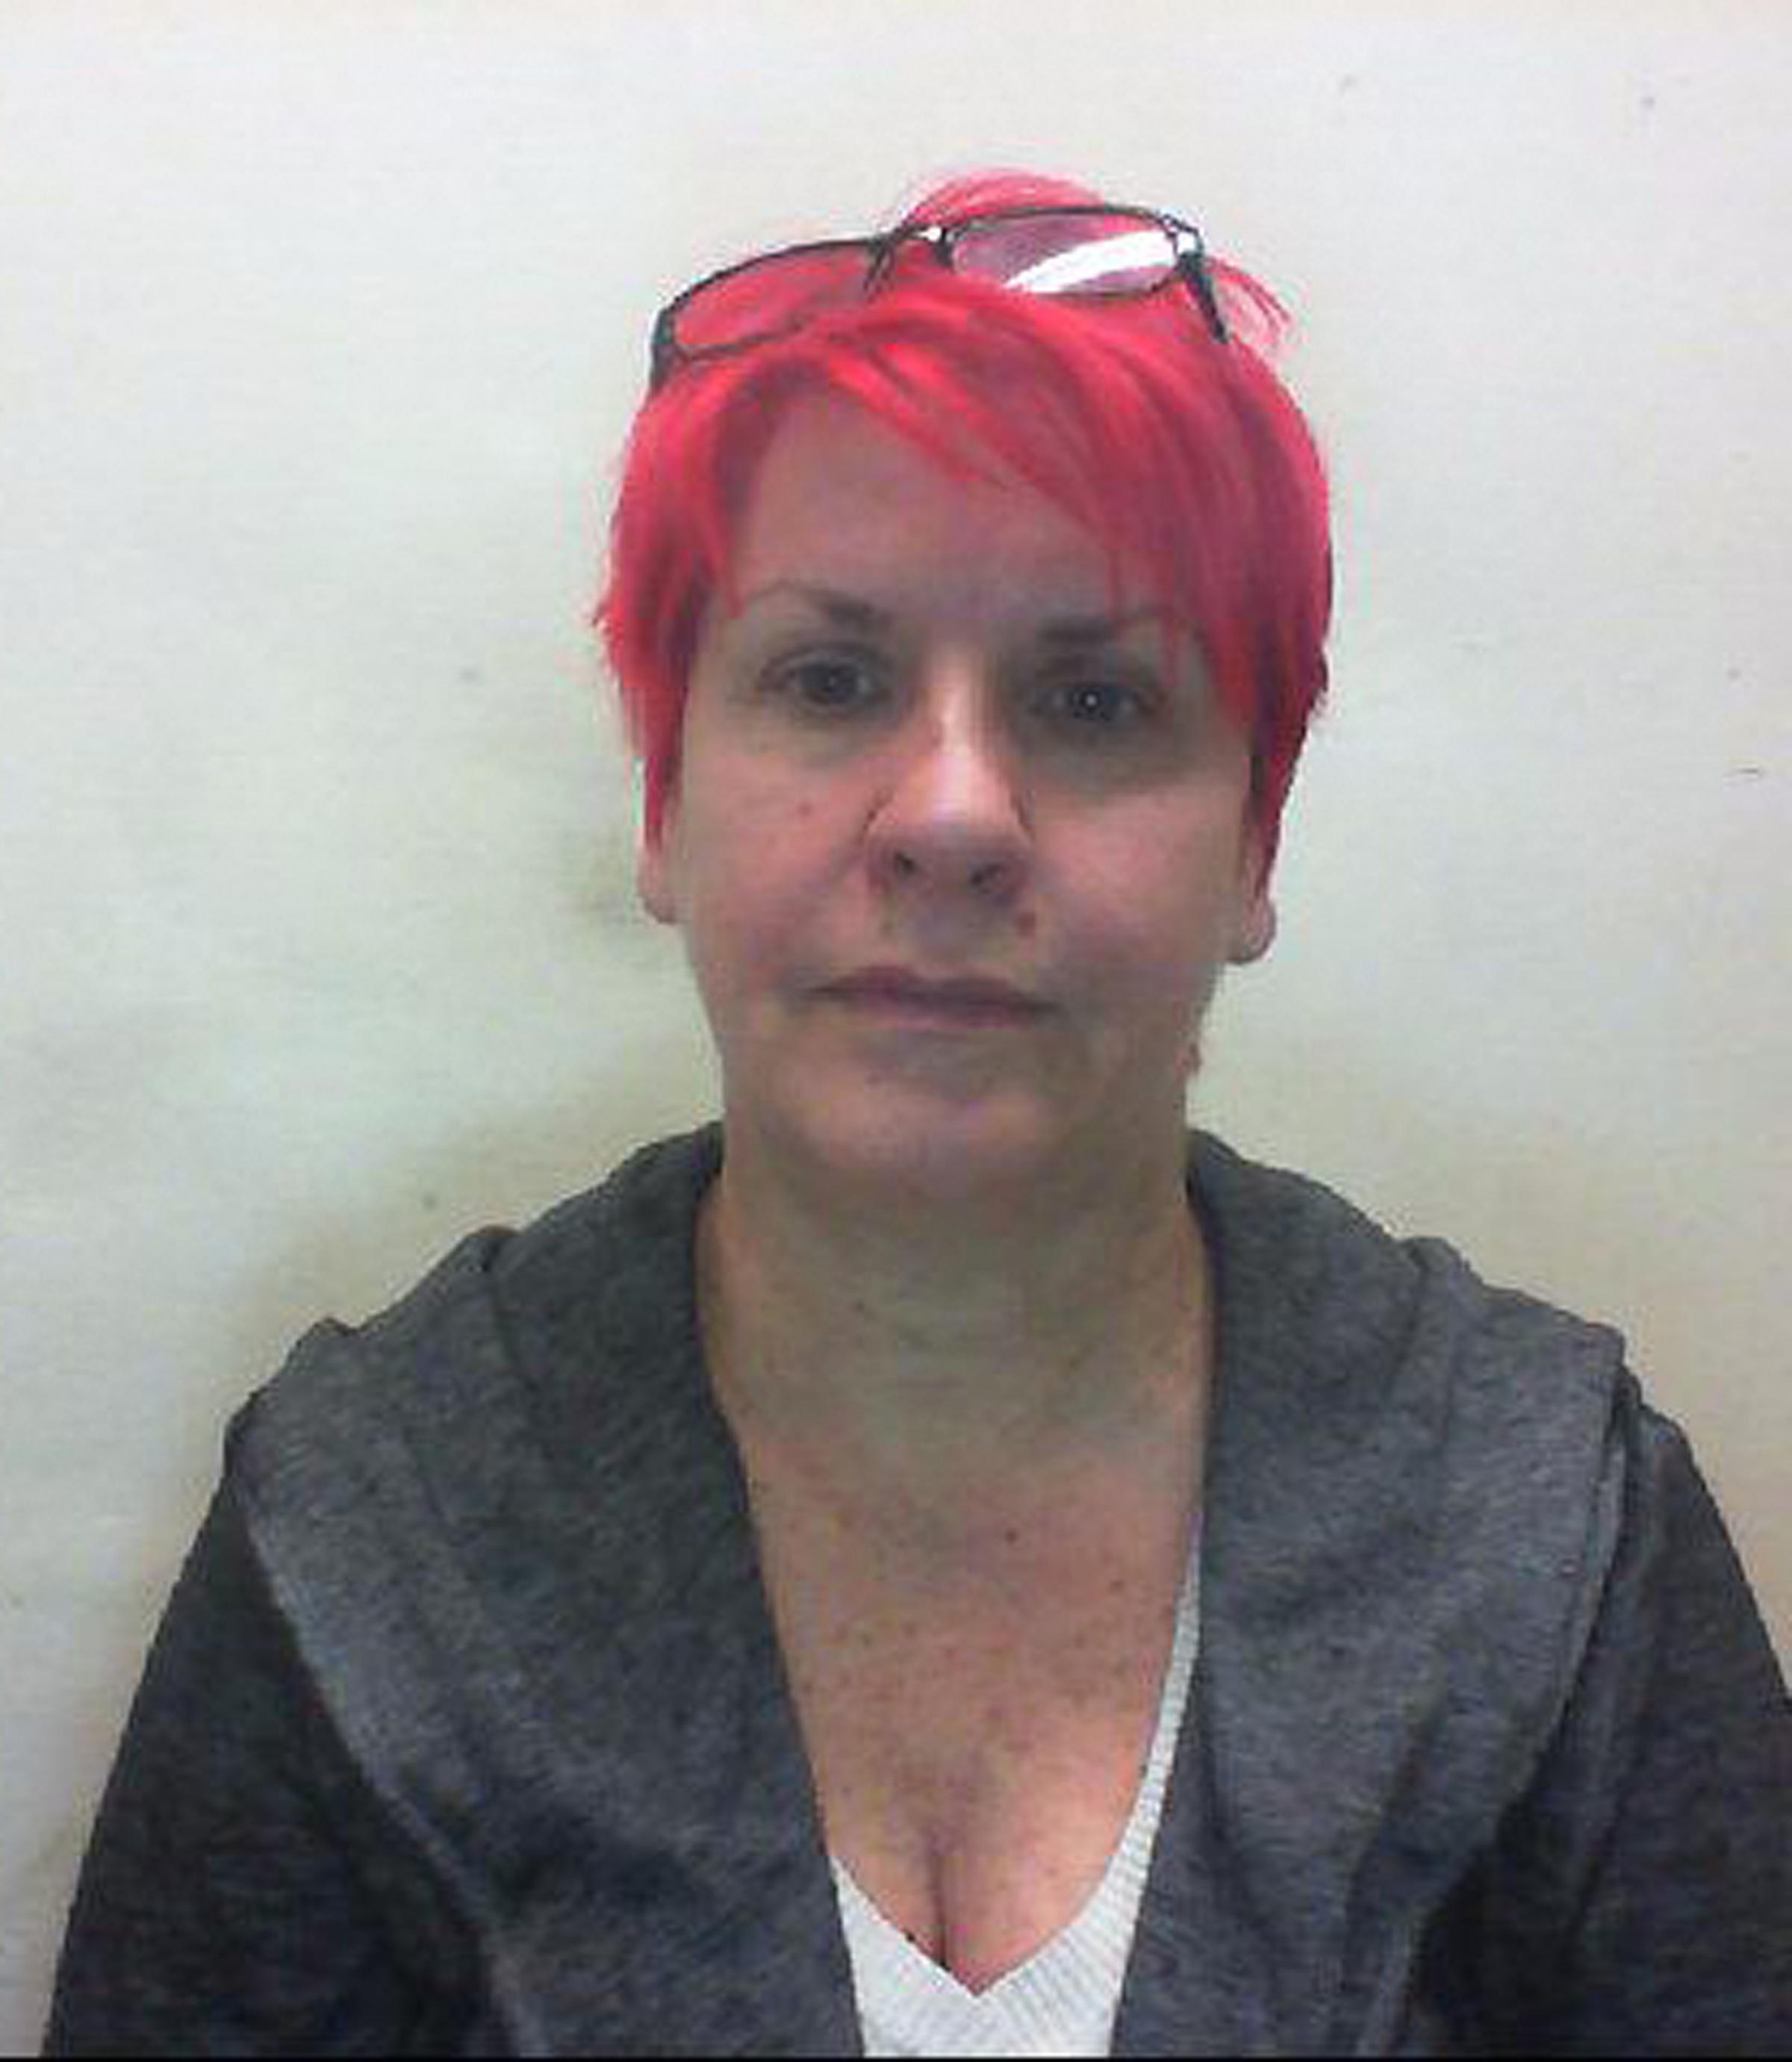 JAILED: Stephanie Todd has been jailed for theft